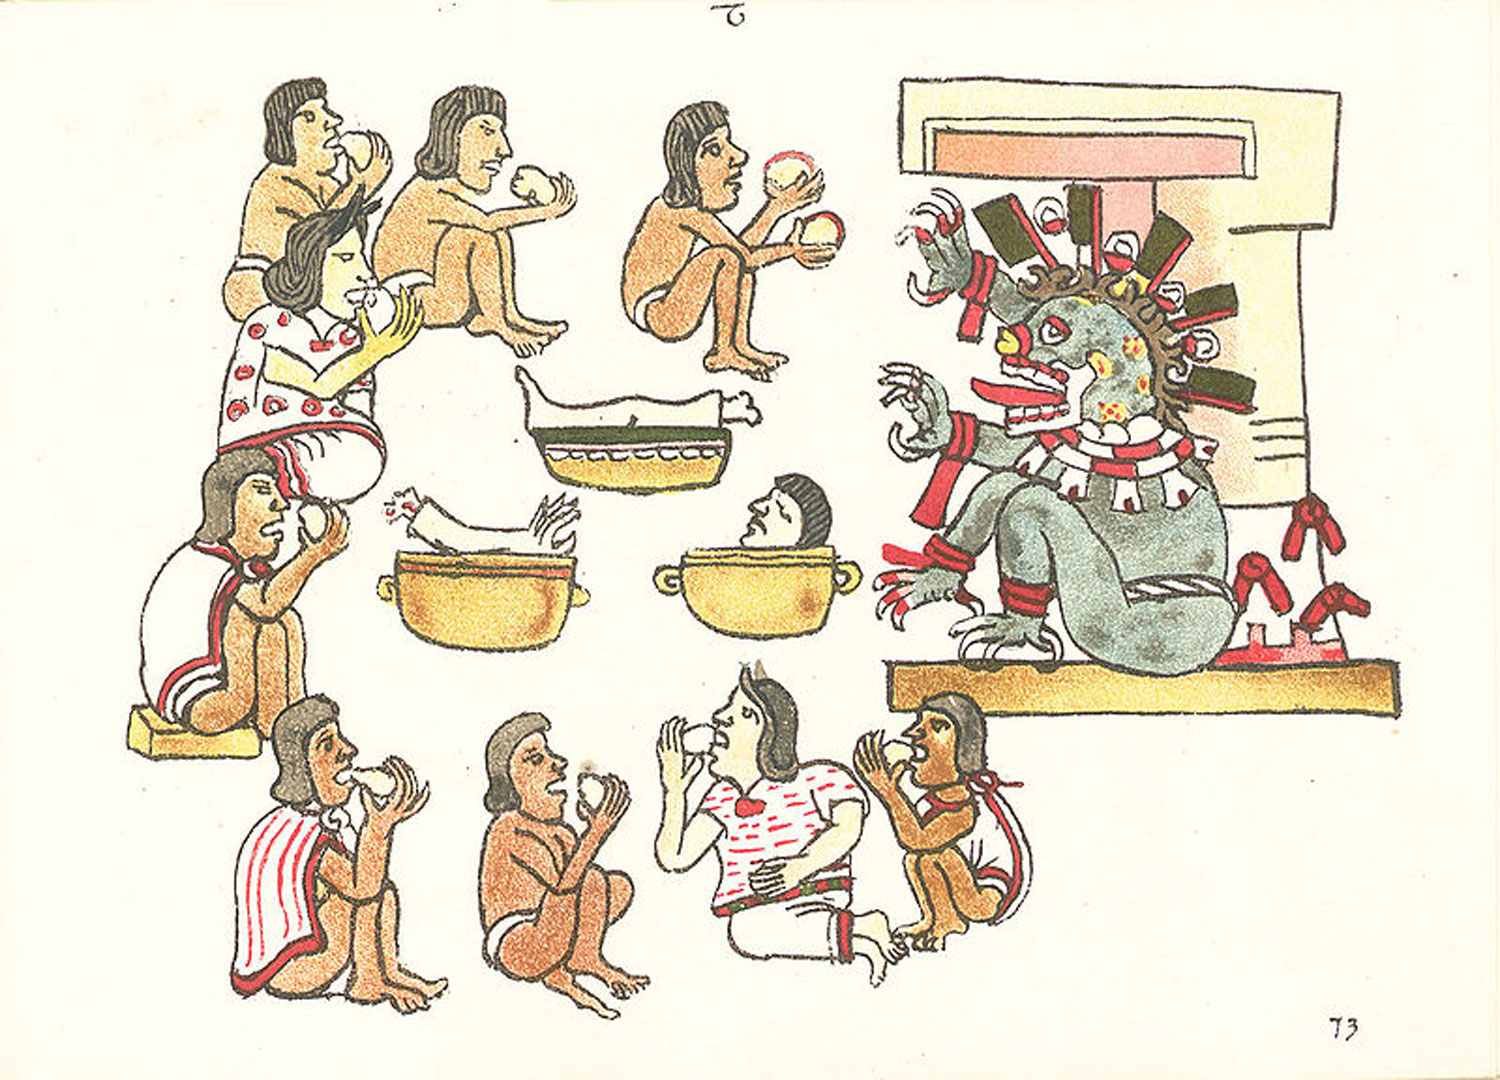 A scene in the  Codex Magliabechiano  depicting ritualistic cannibalism being practised.